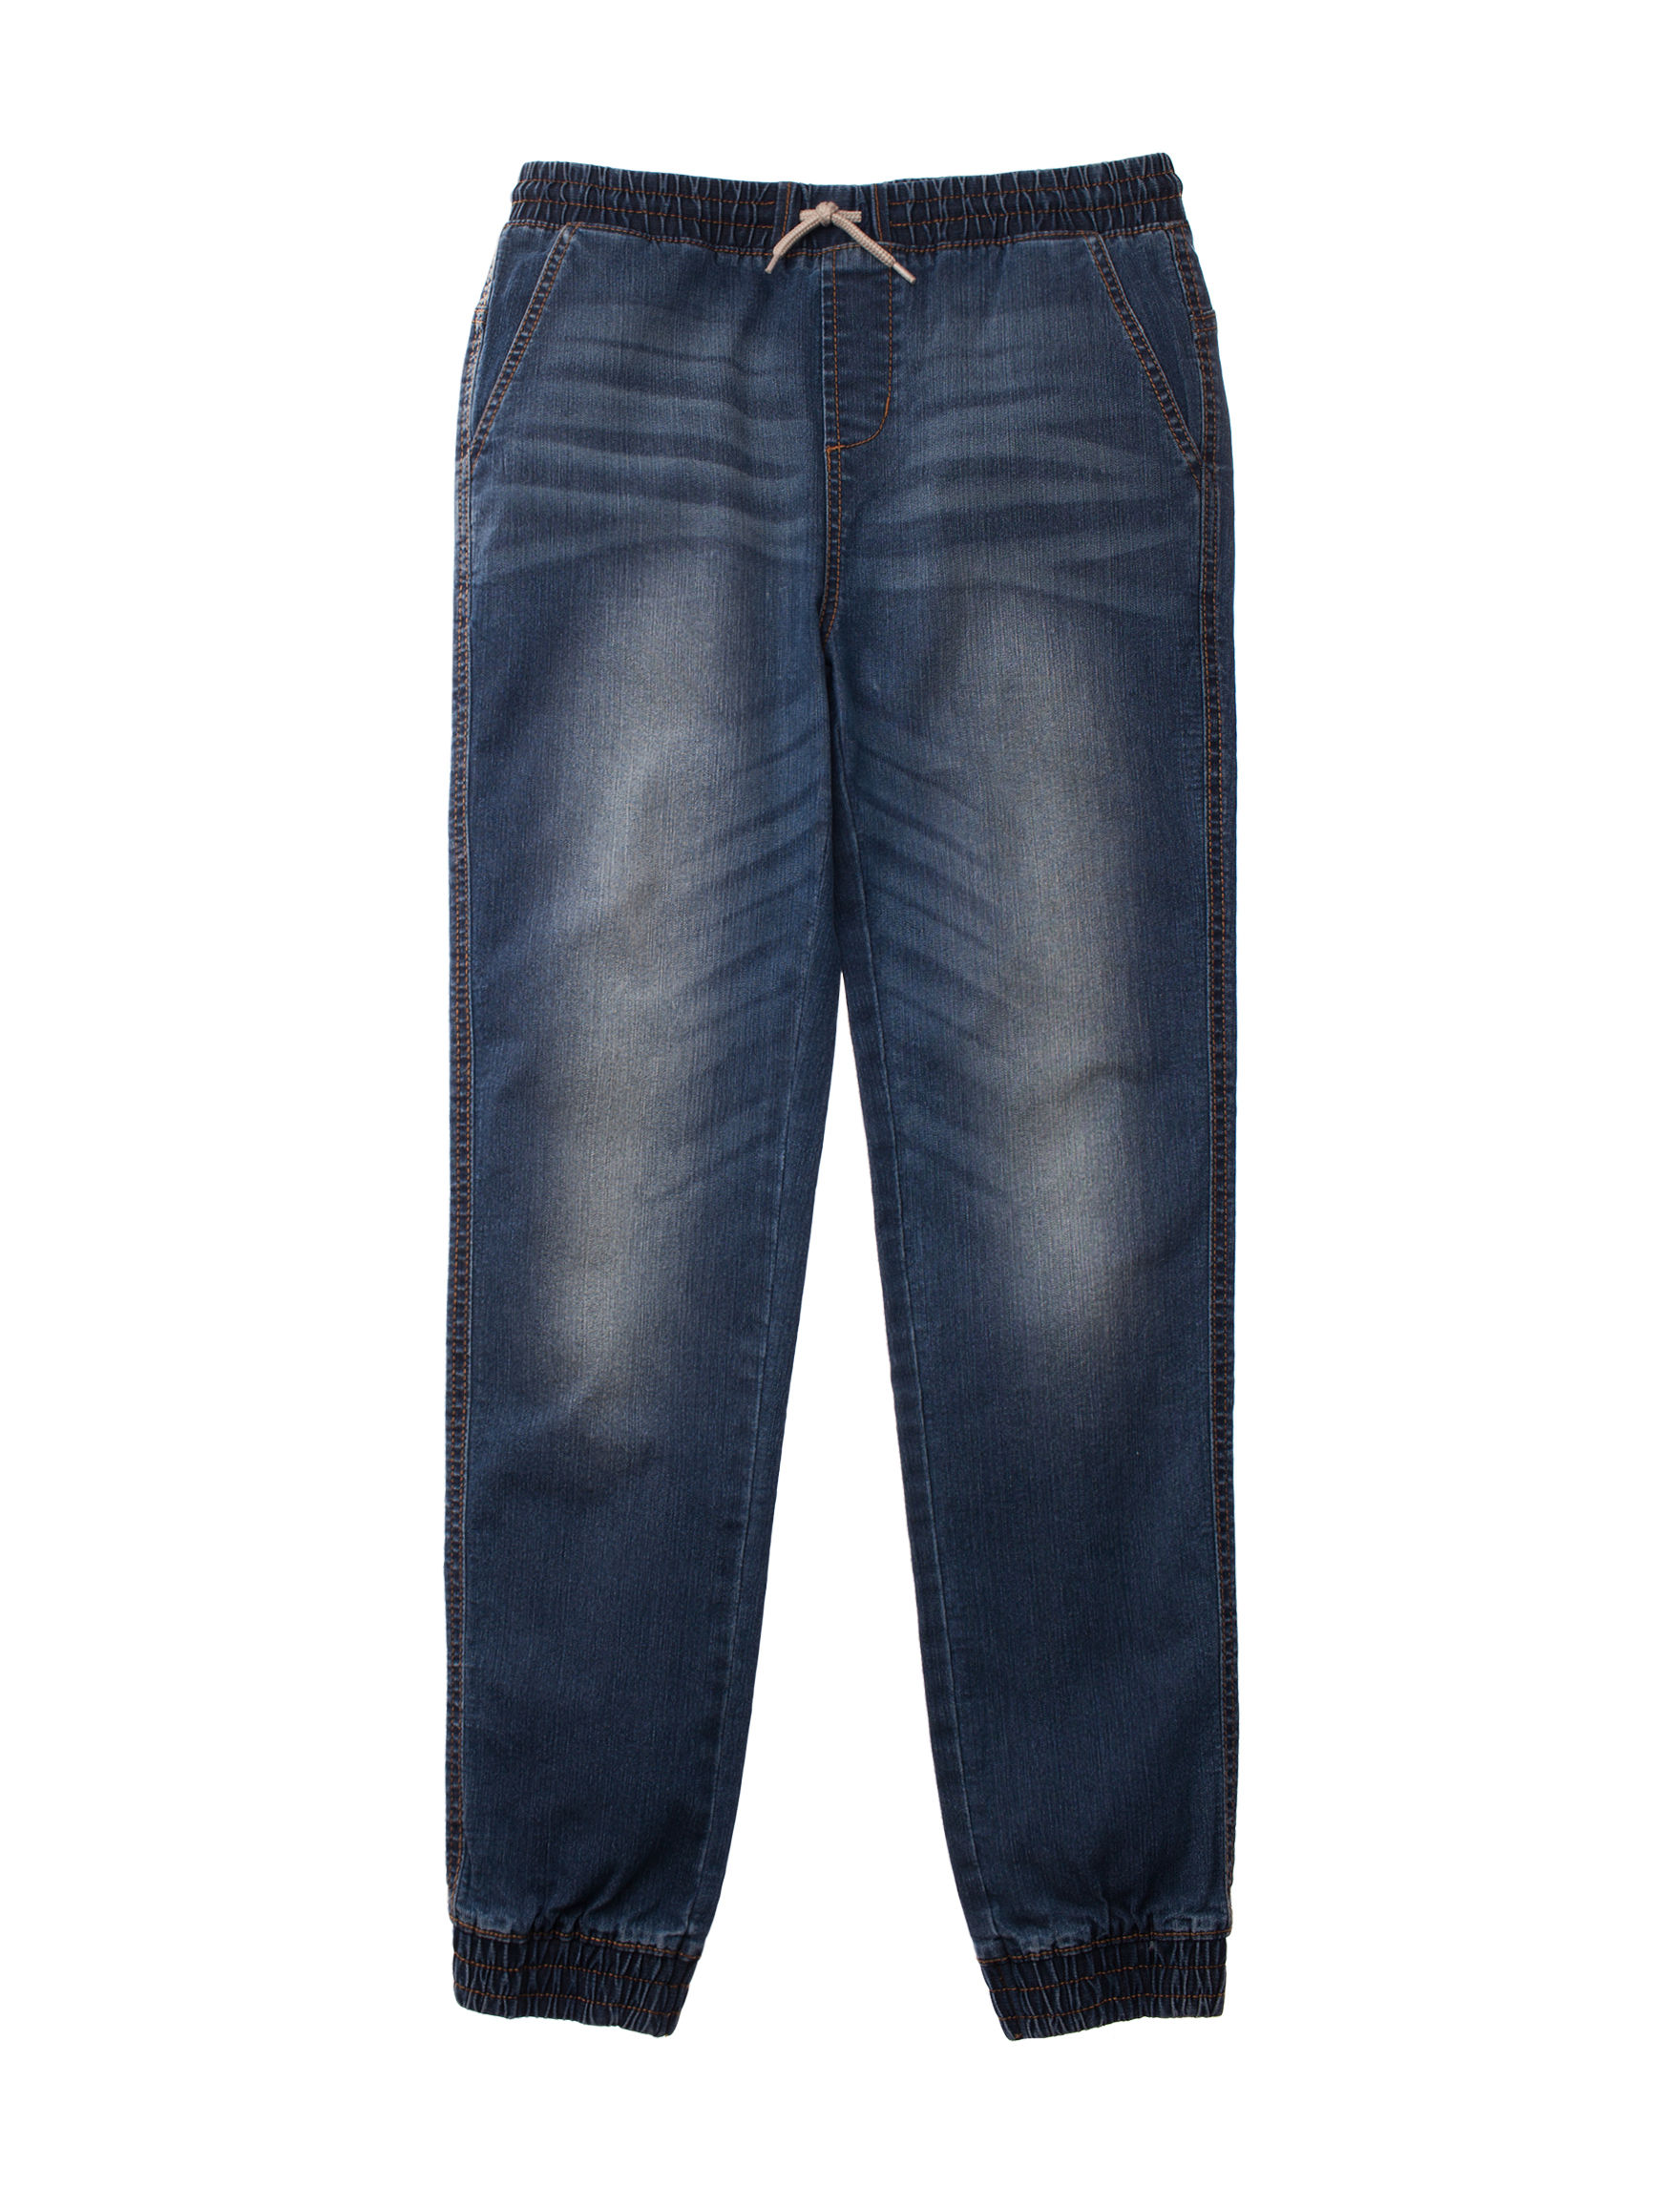 Rustic Blue Dark Wash Stretch